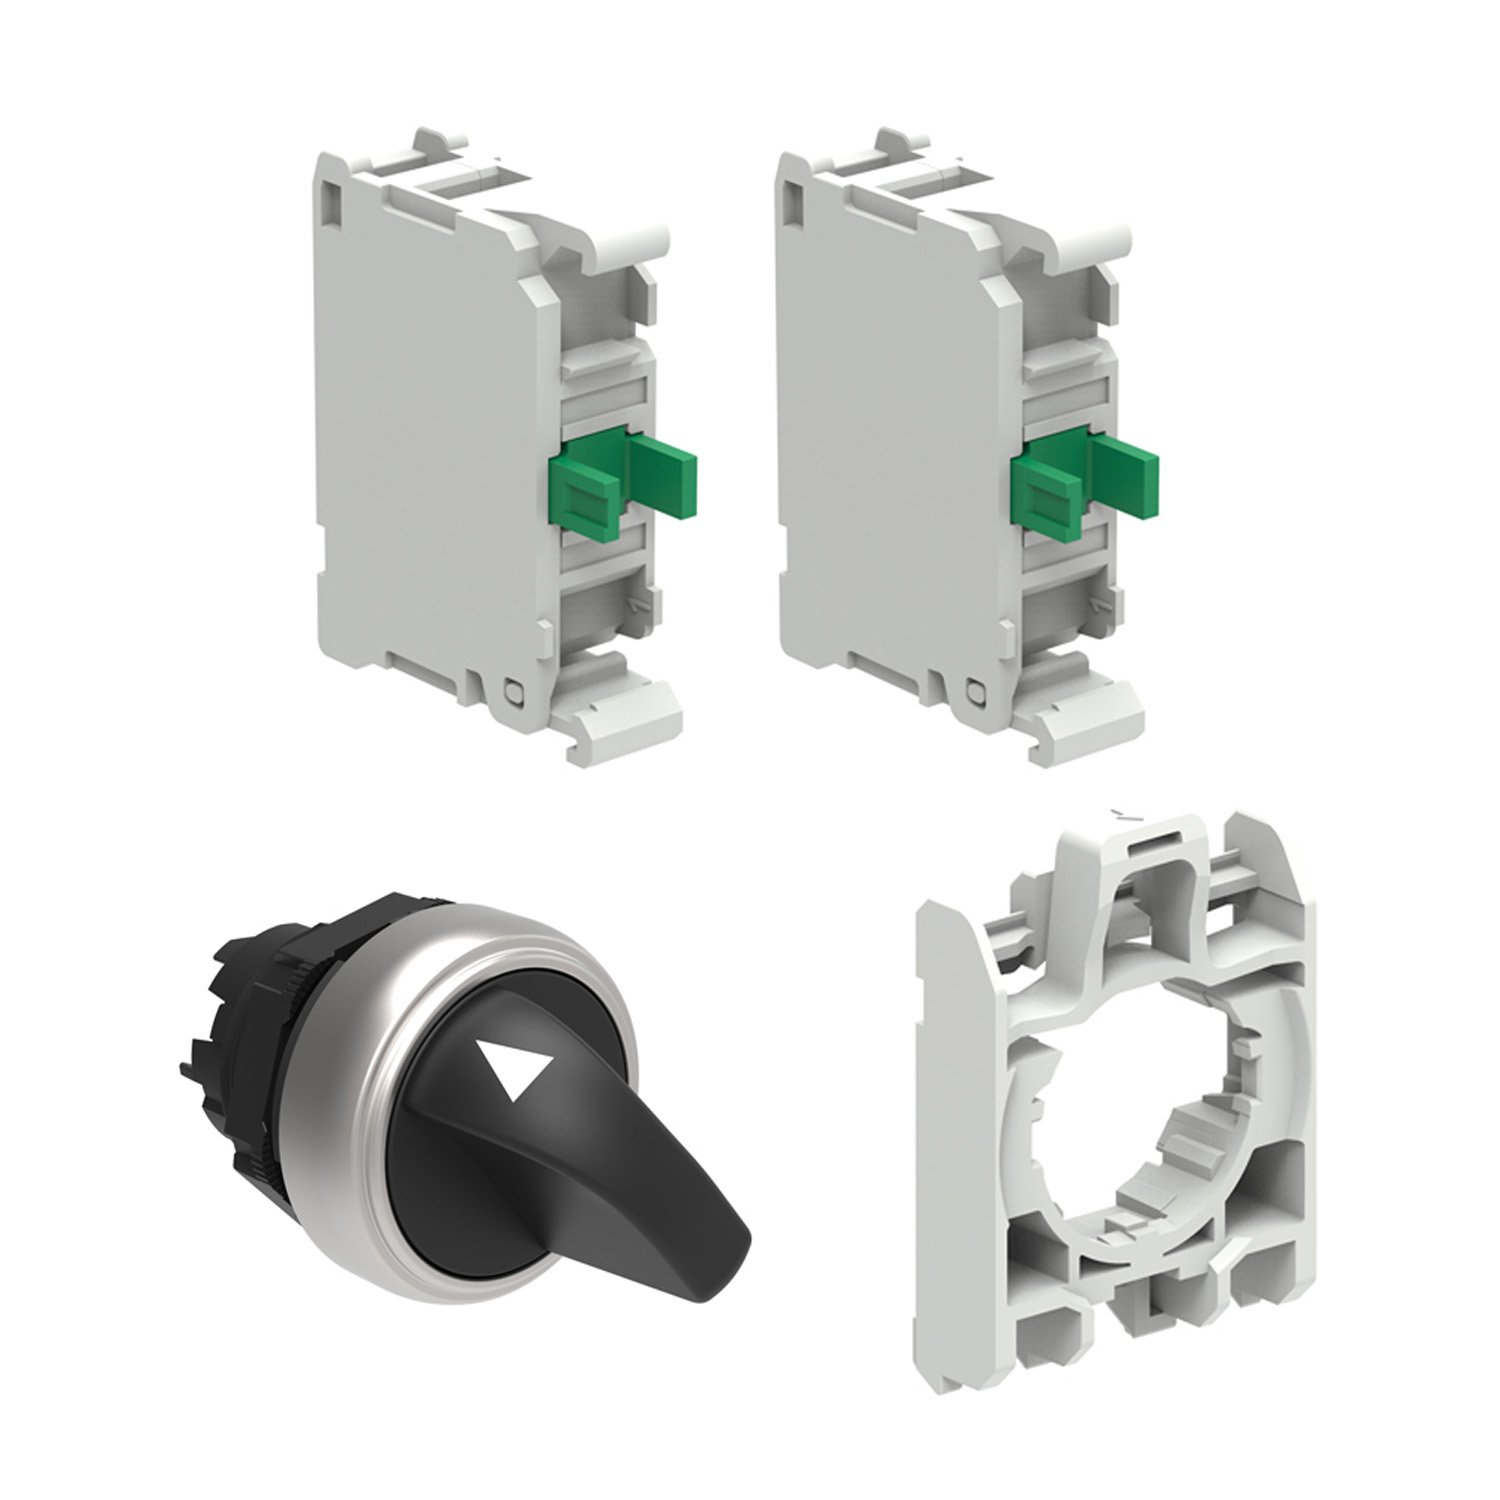 Black 2 No Contacts and 1 Contact Holder ASI LPCS130KIT 3 Position Switch Kit Includes 22 mm 3 Position Knob Actuator